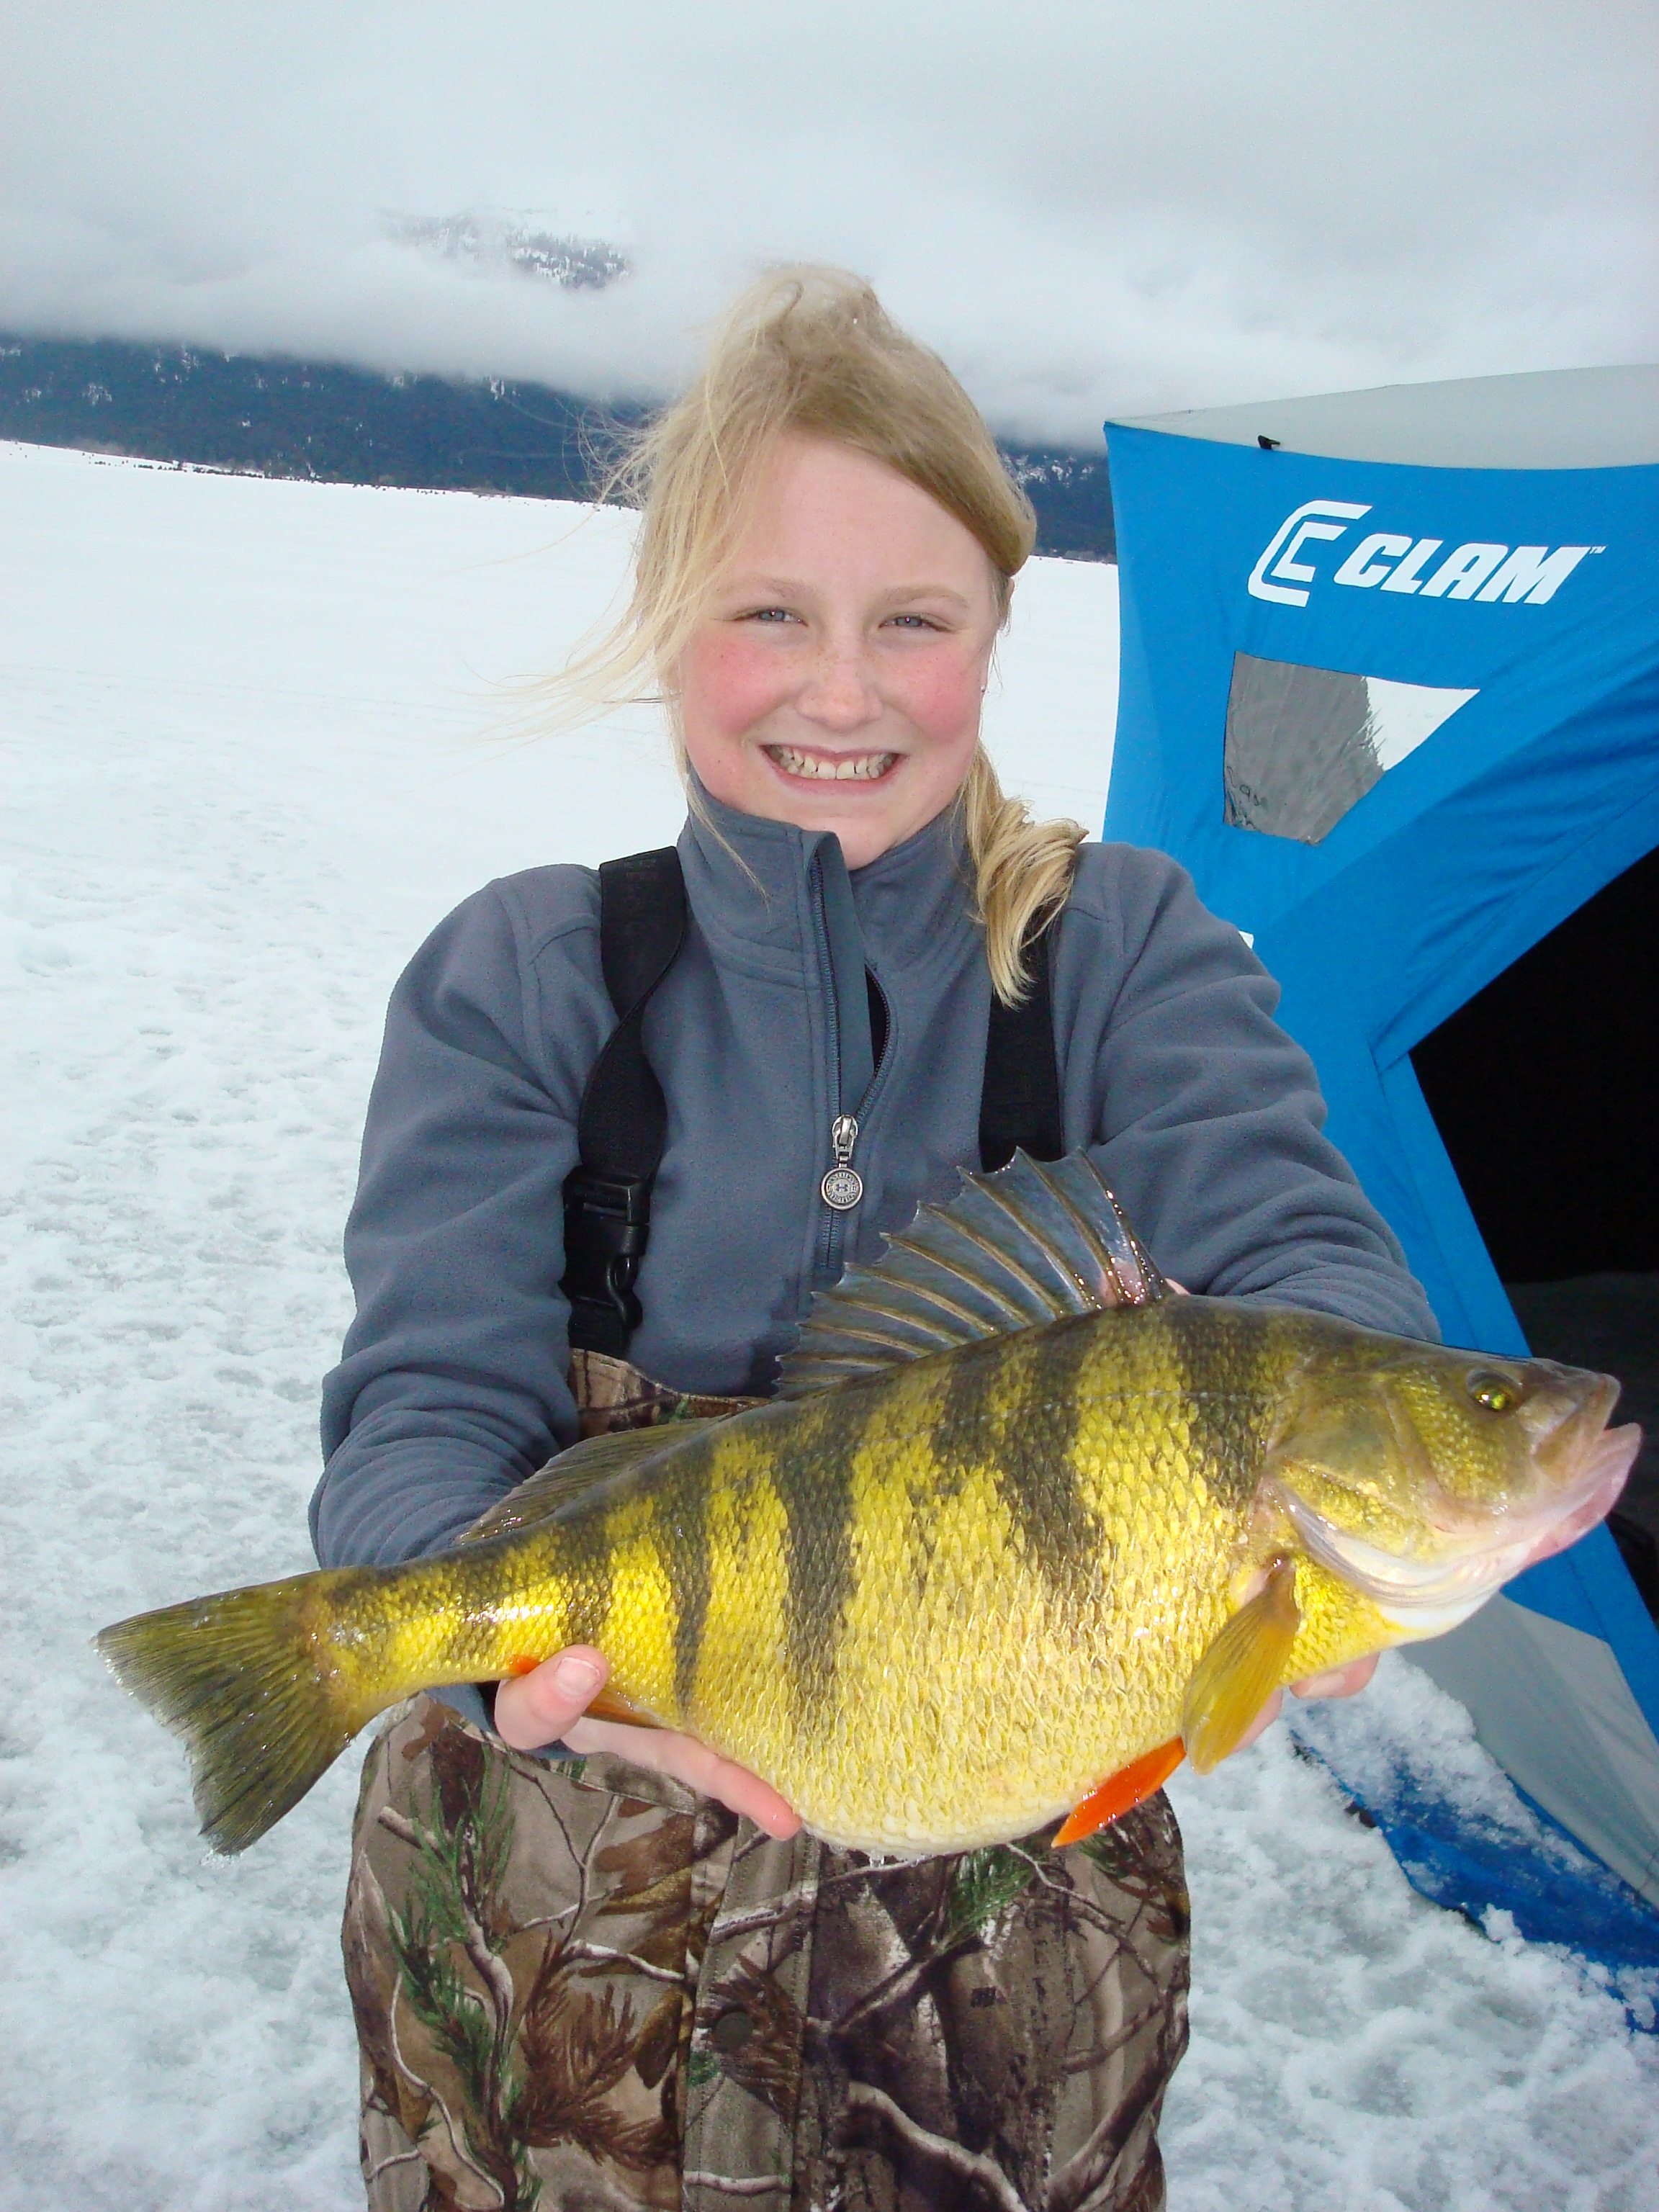 Tia Wiese's world record perch measured a whopping 15.5 inches long